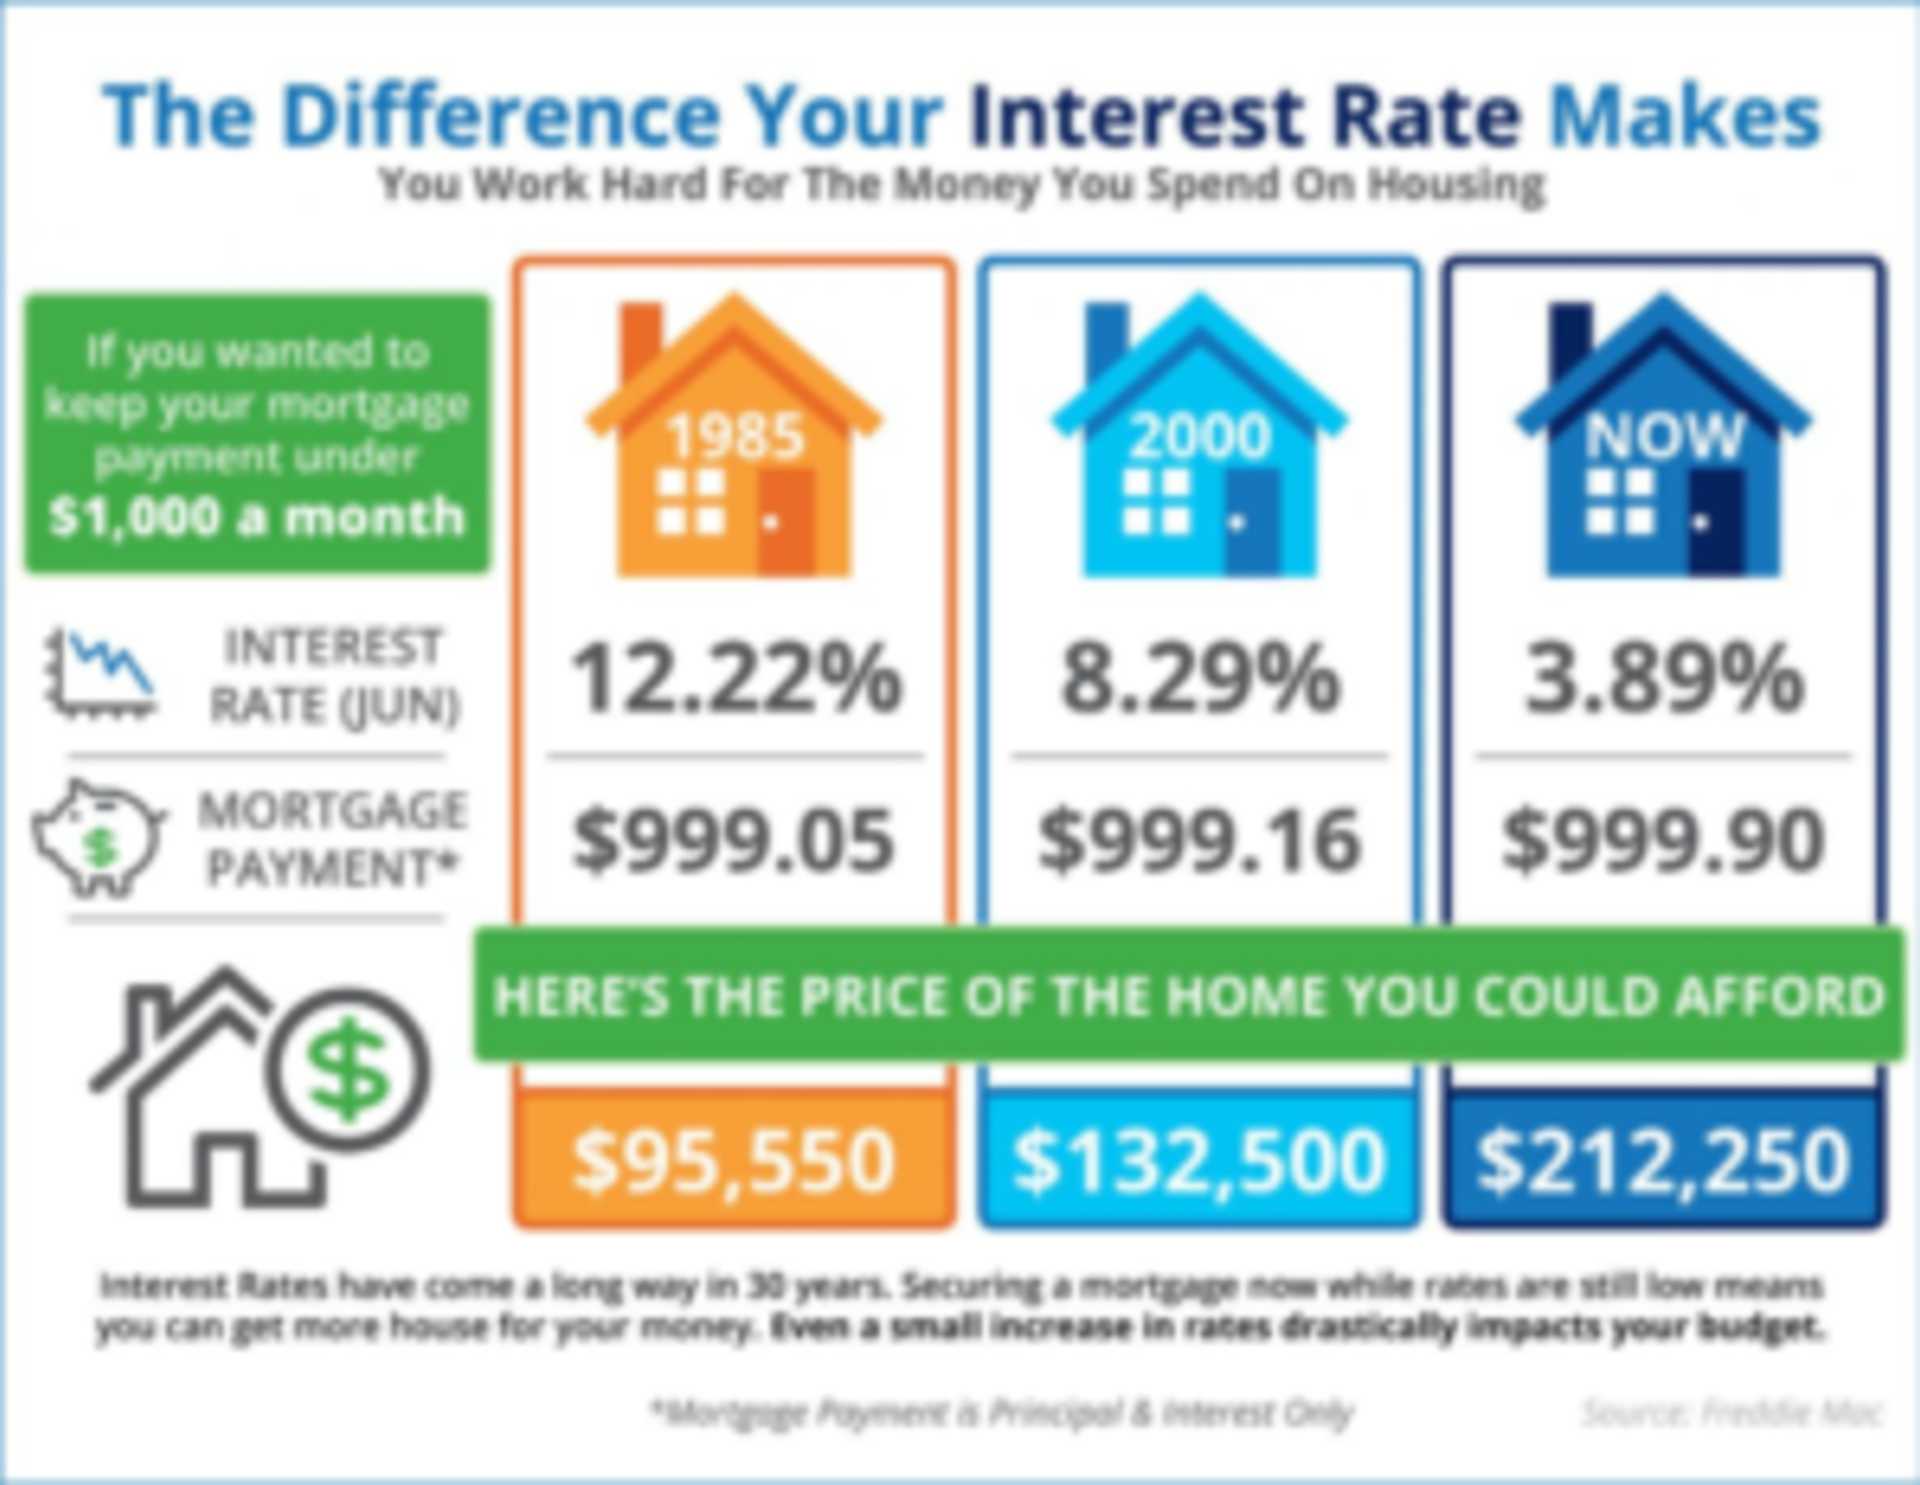 The Impact Your Interest Rate Has